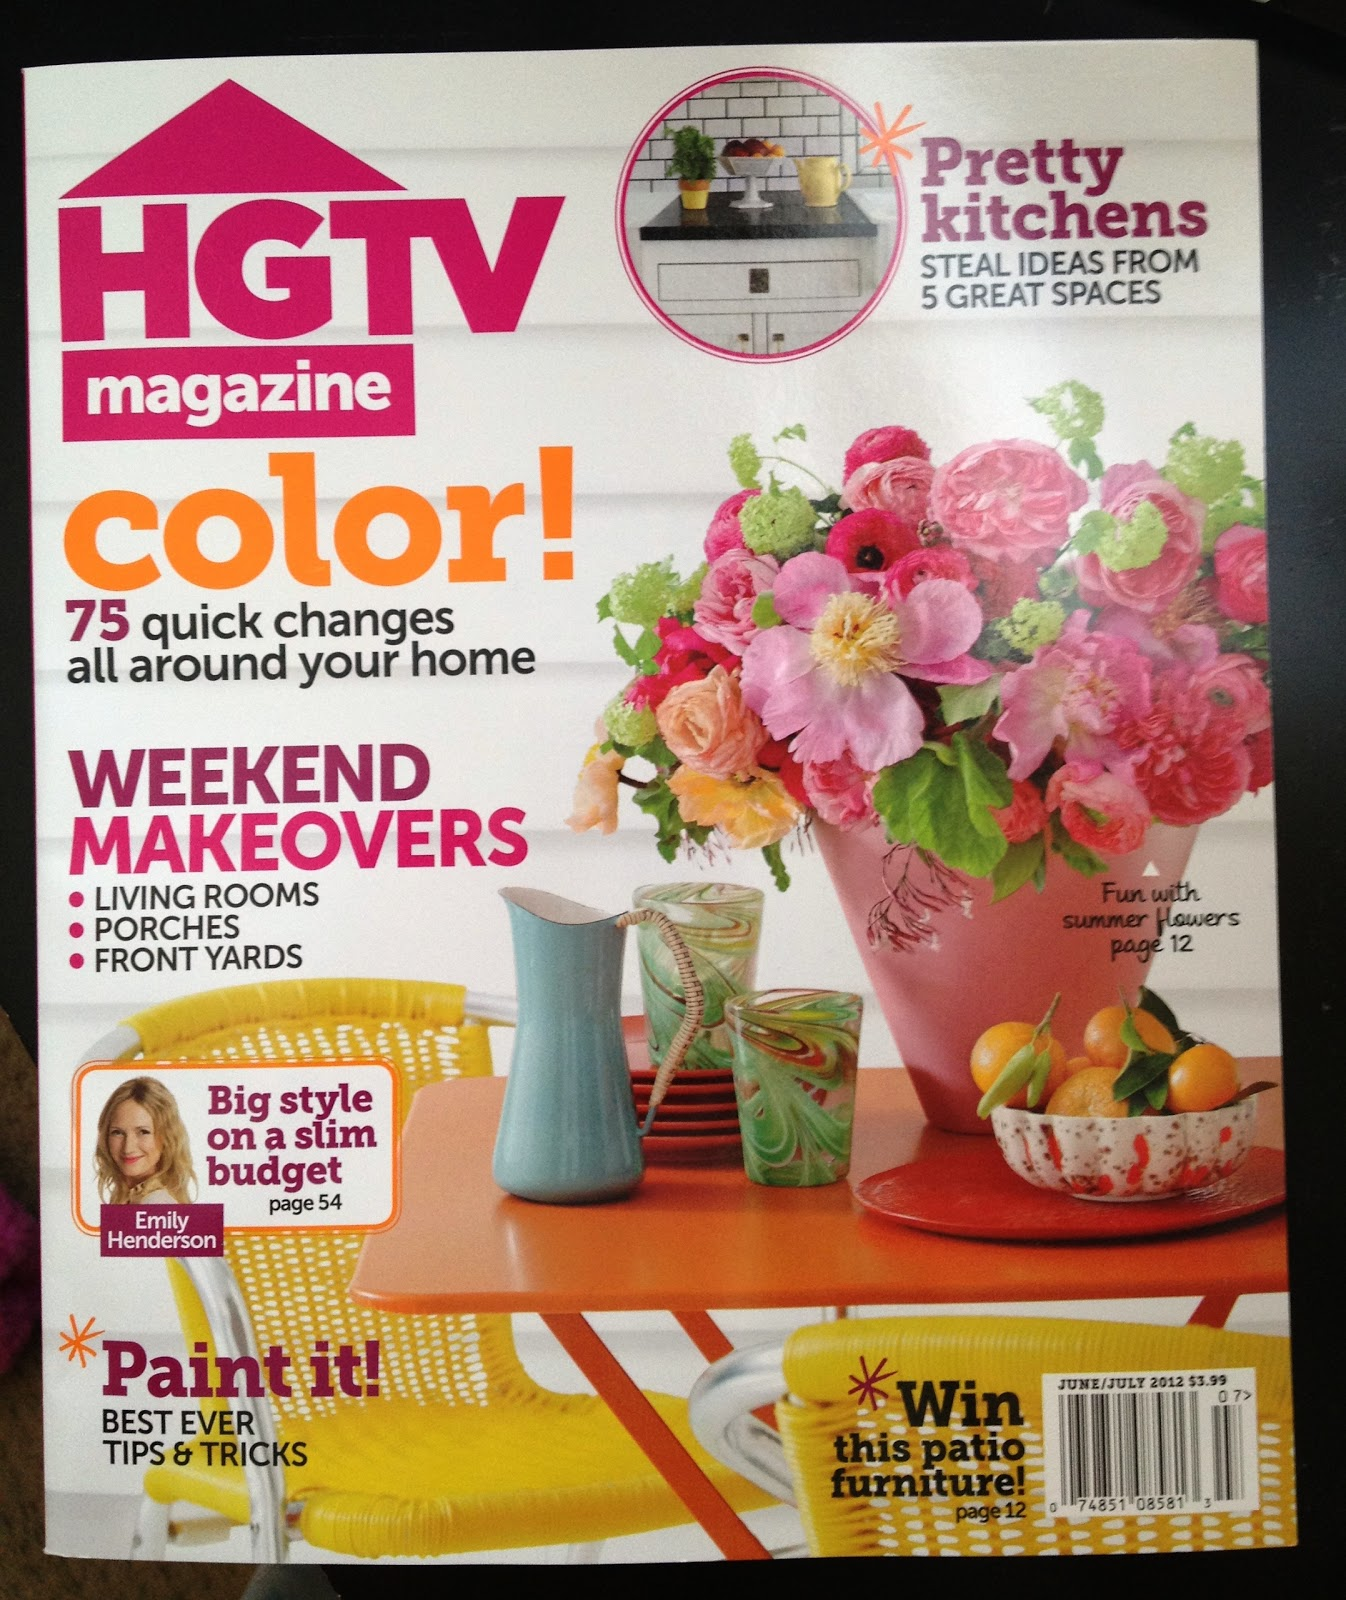 This Is HGTV Magazineu0027s Third Issue And They Already Have A HUGE  Readership. I Really Love This New Home Decor Magazine Because It Reads  Very Much Like ...